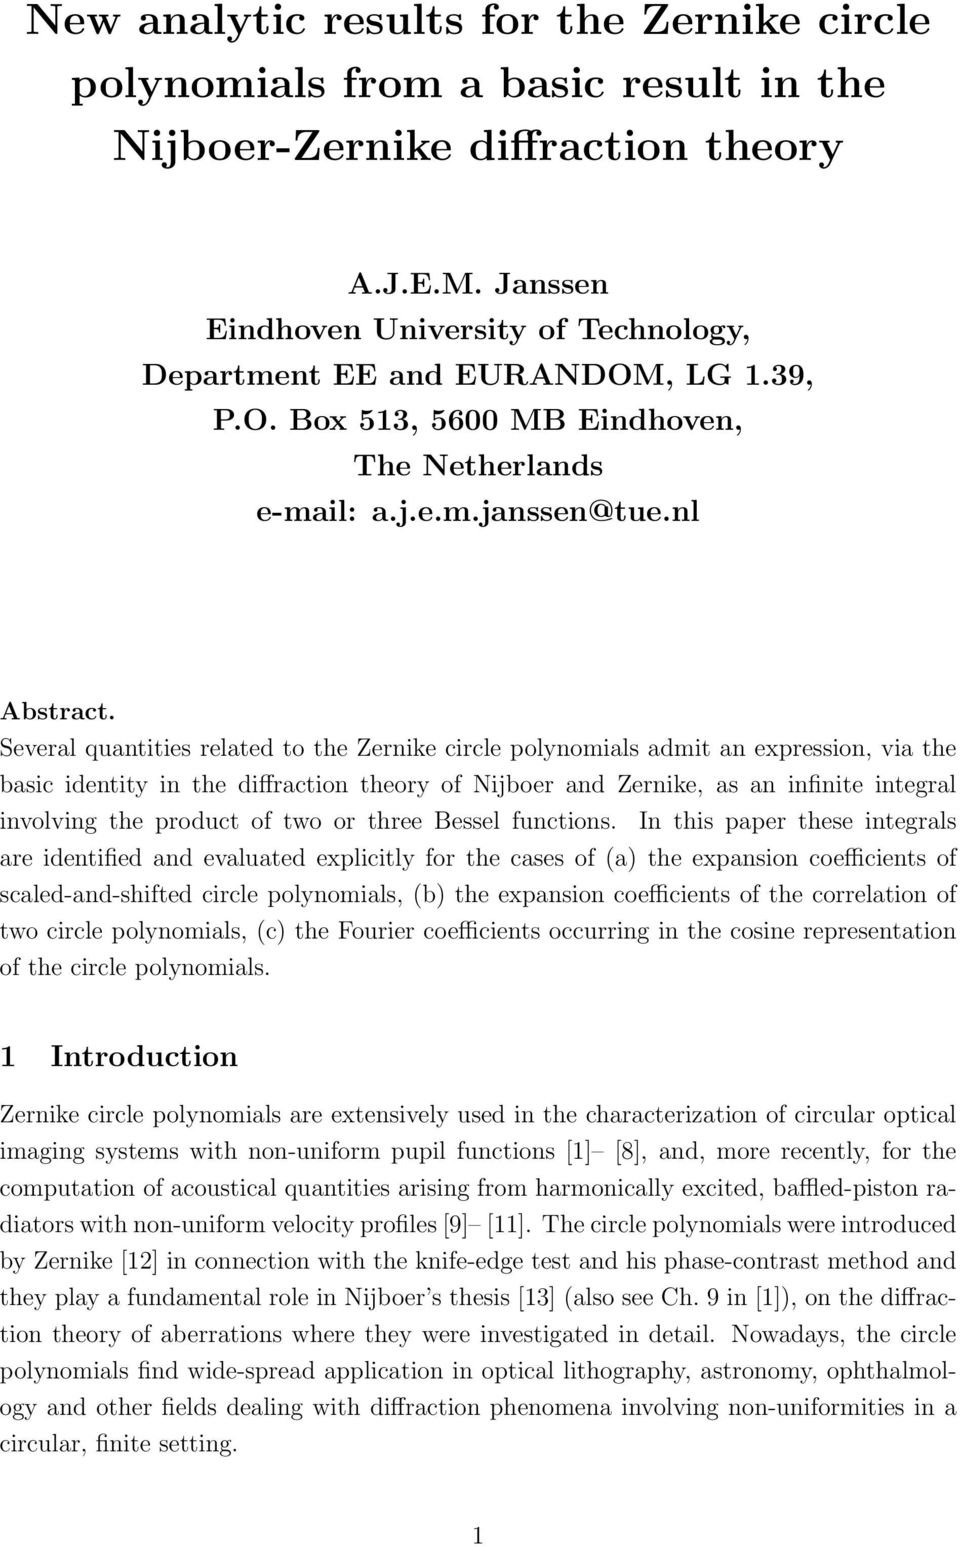 Several quantities related to the Zernike circle polynomials admit an expression, via the basic identity in the diffraction theory of Nijboer and Zernike, as an infinite integral involving the